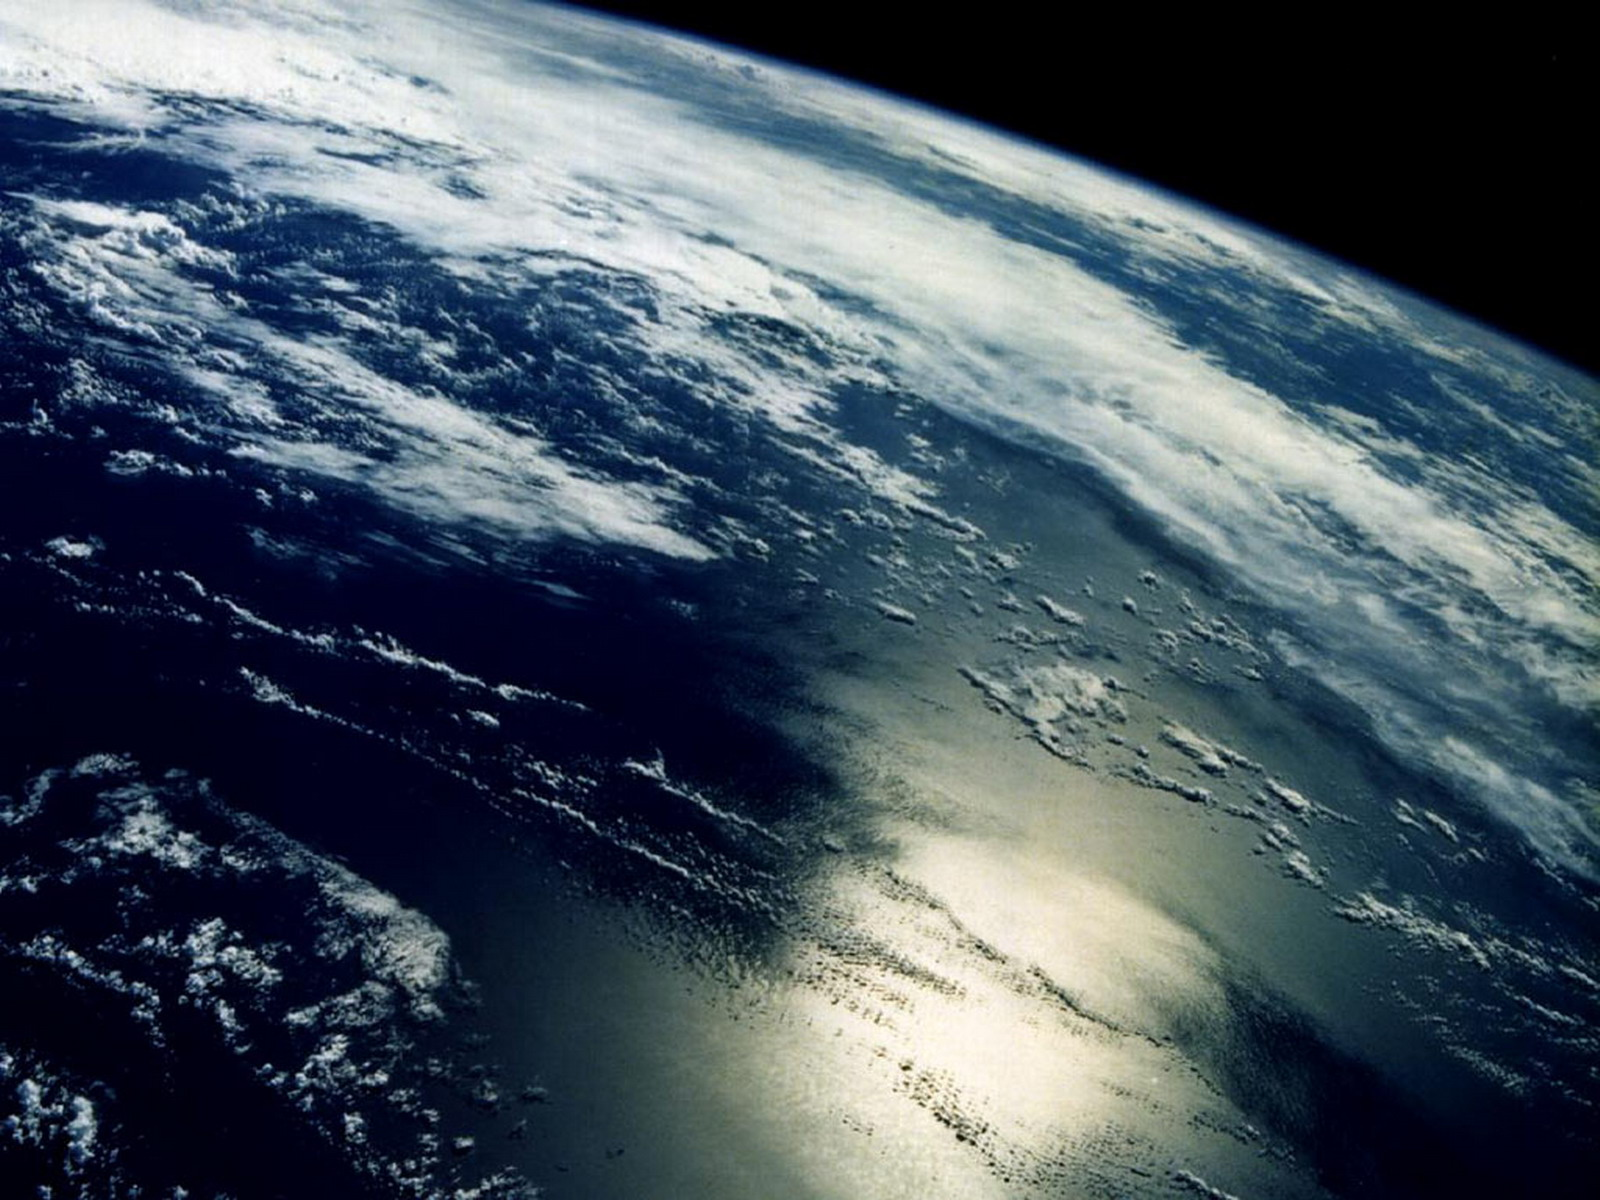 Nasa Iphone 5 Wallpaper Planet Earth Seen From Space Hd Photos